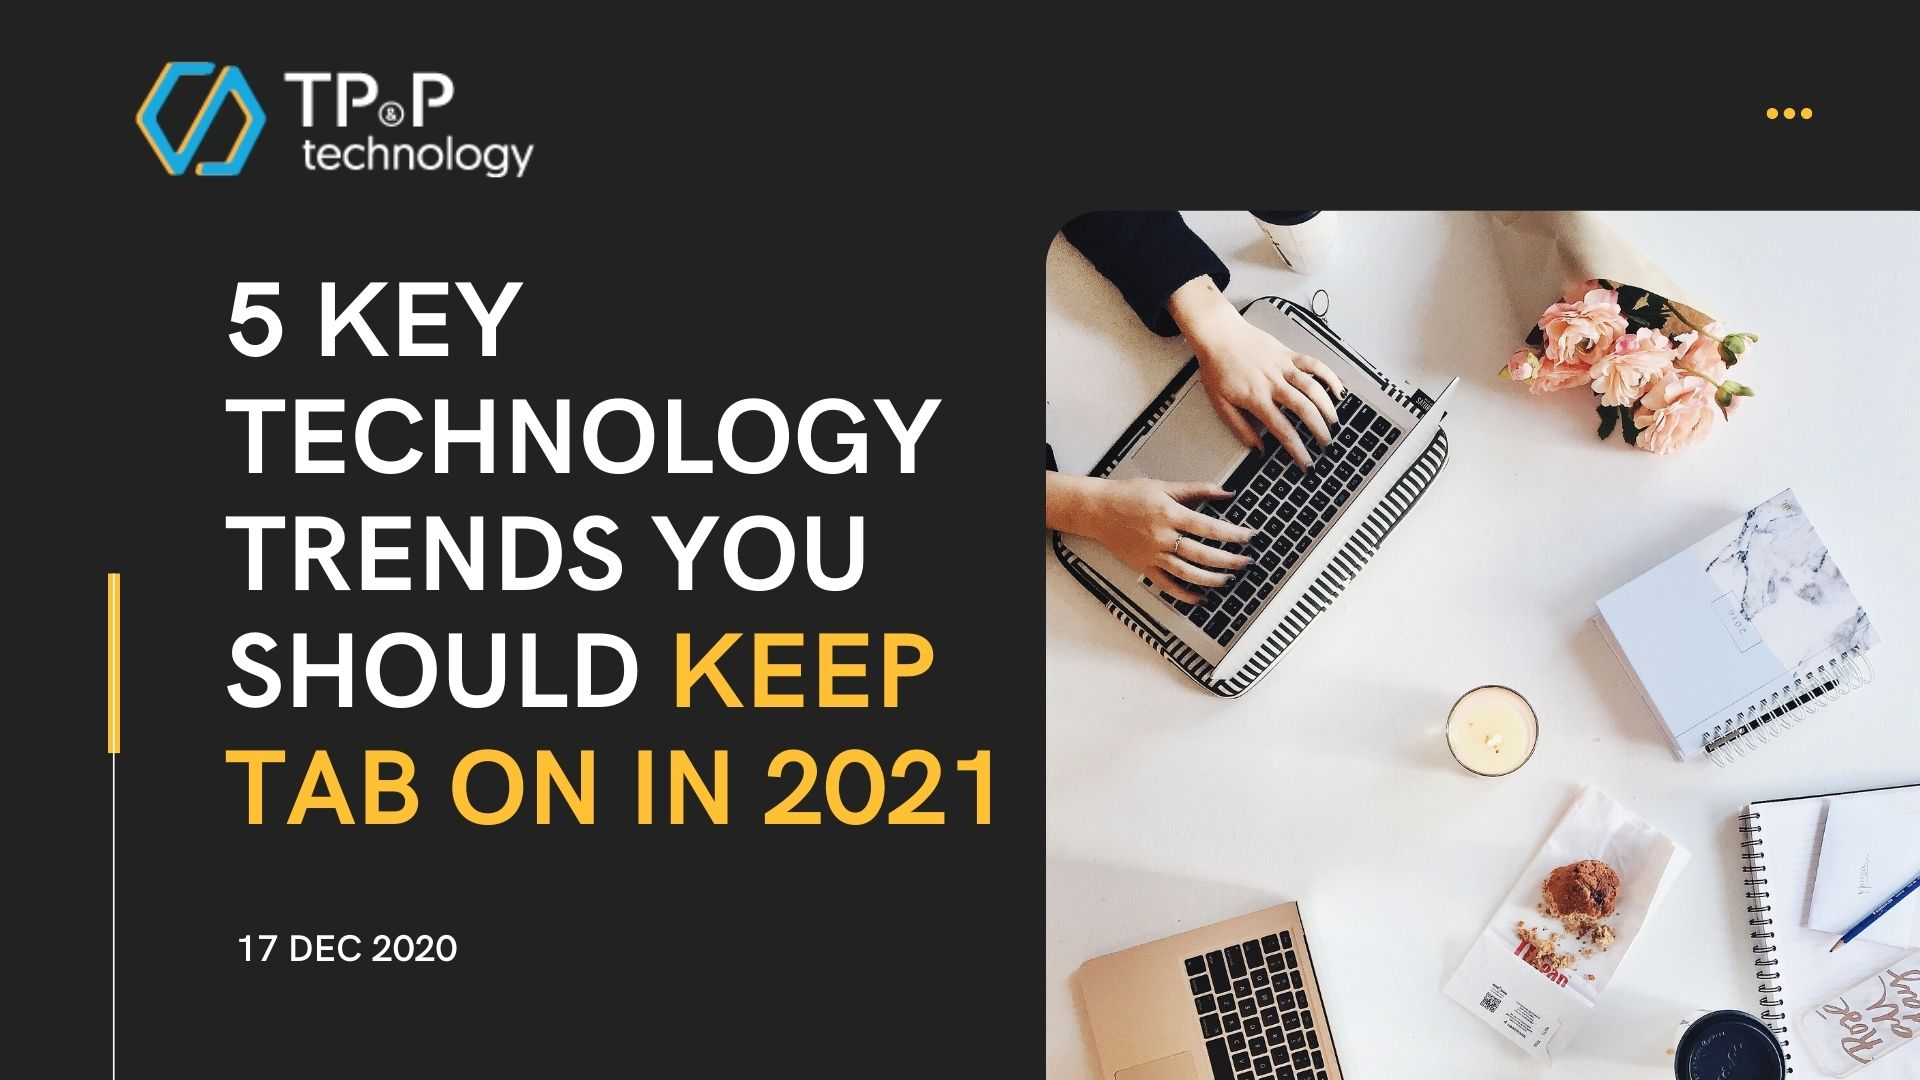 5 Key Technology Trends You Should Keep Tab On In 2021